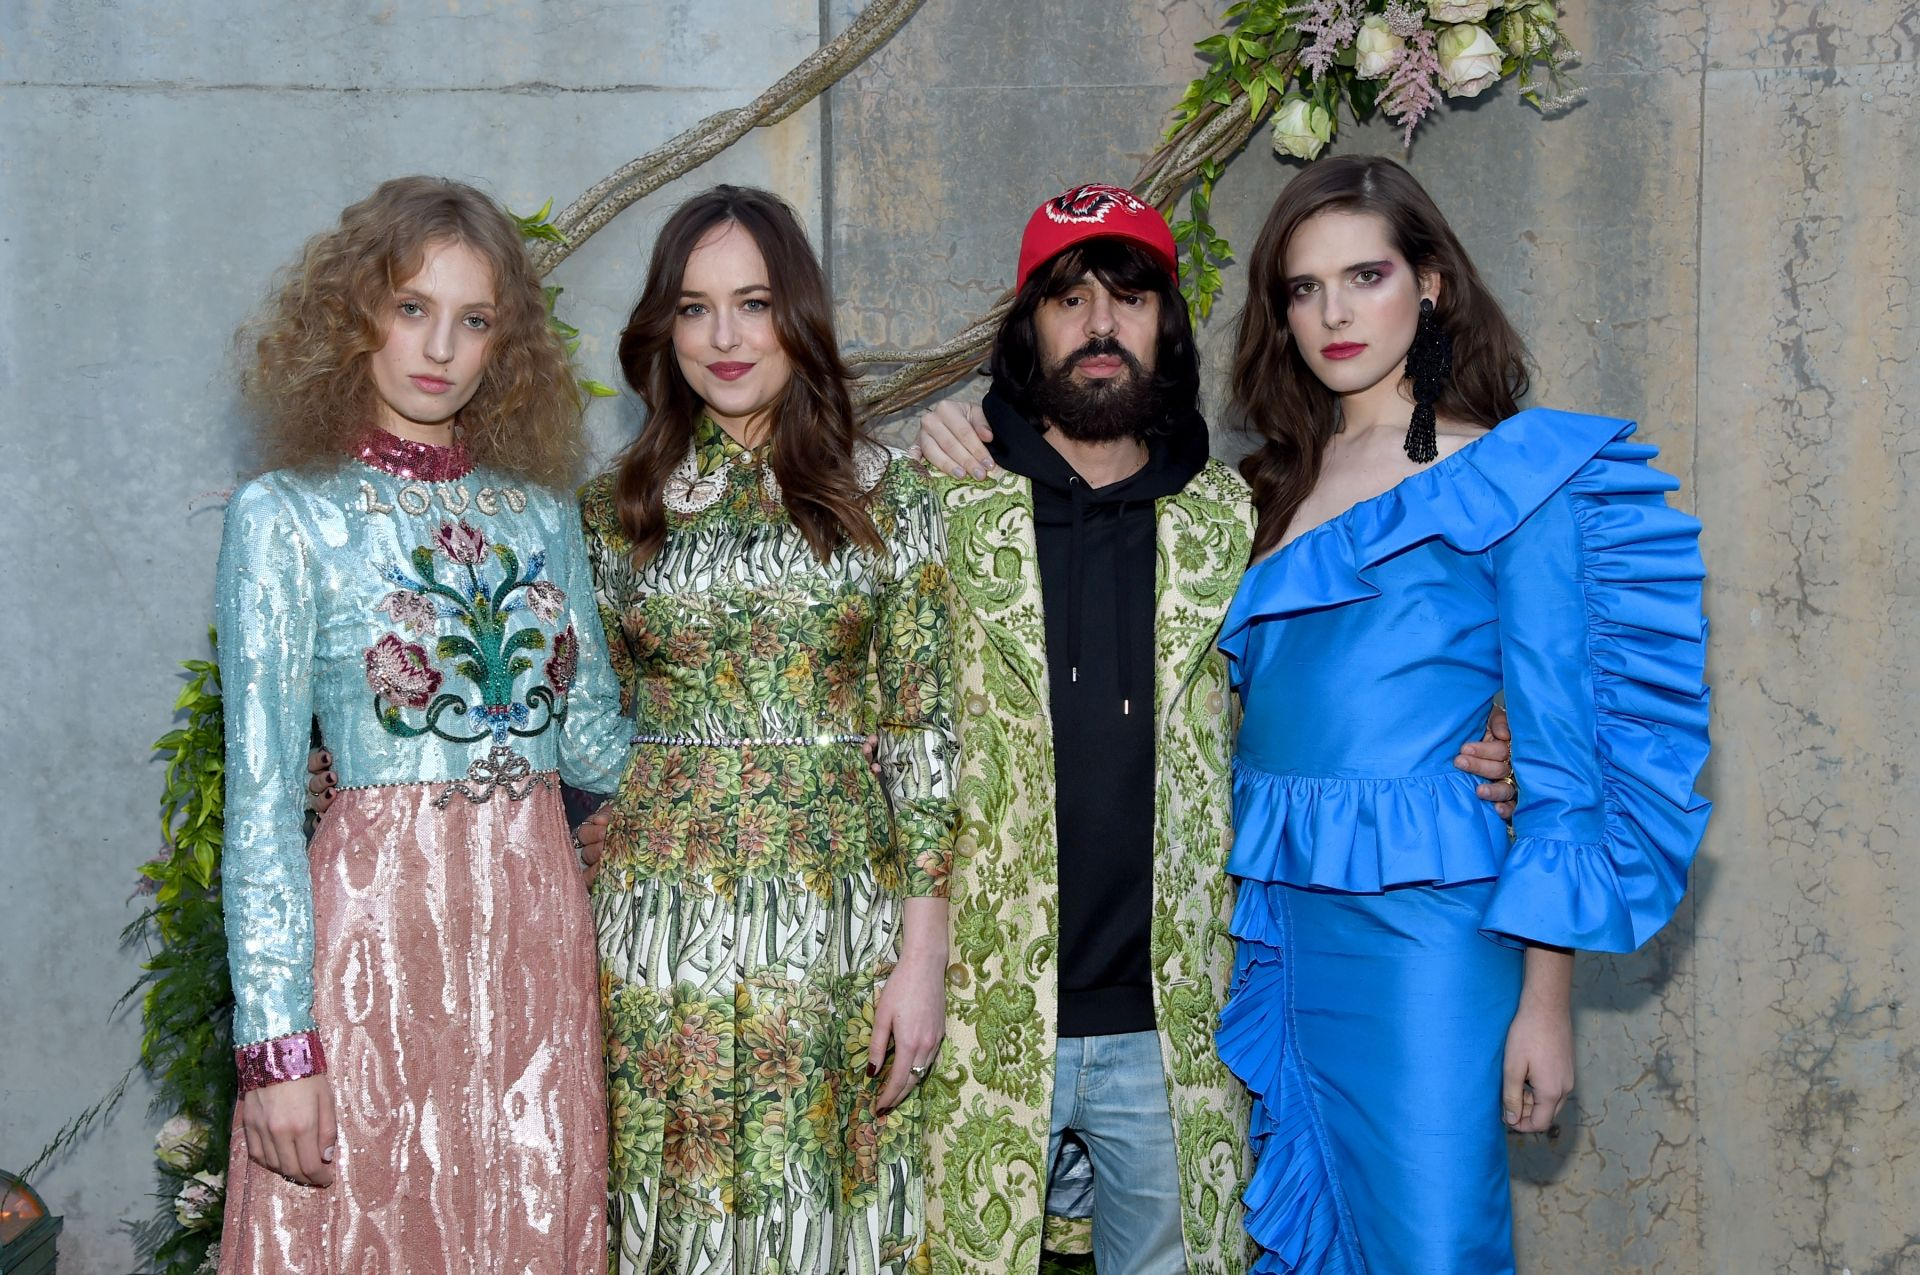 df148dacc46 GUCCI Bloom – Alessandro Michele s first fragrance hit - Alina Ceusan